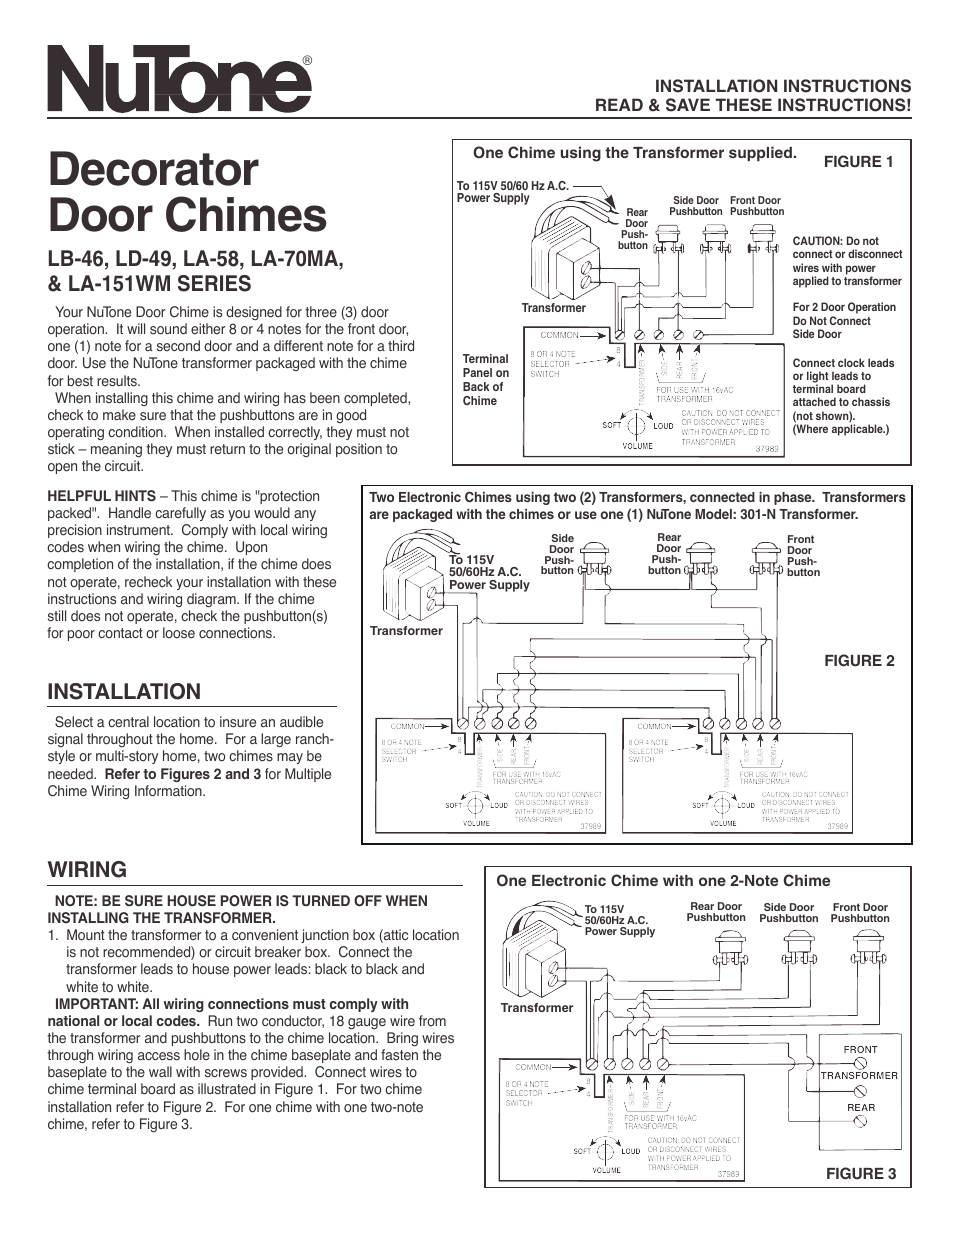 rittenhouse door chime wiring diagram rittenhouse circuit diagrams